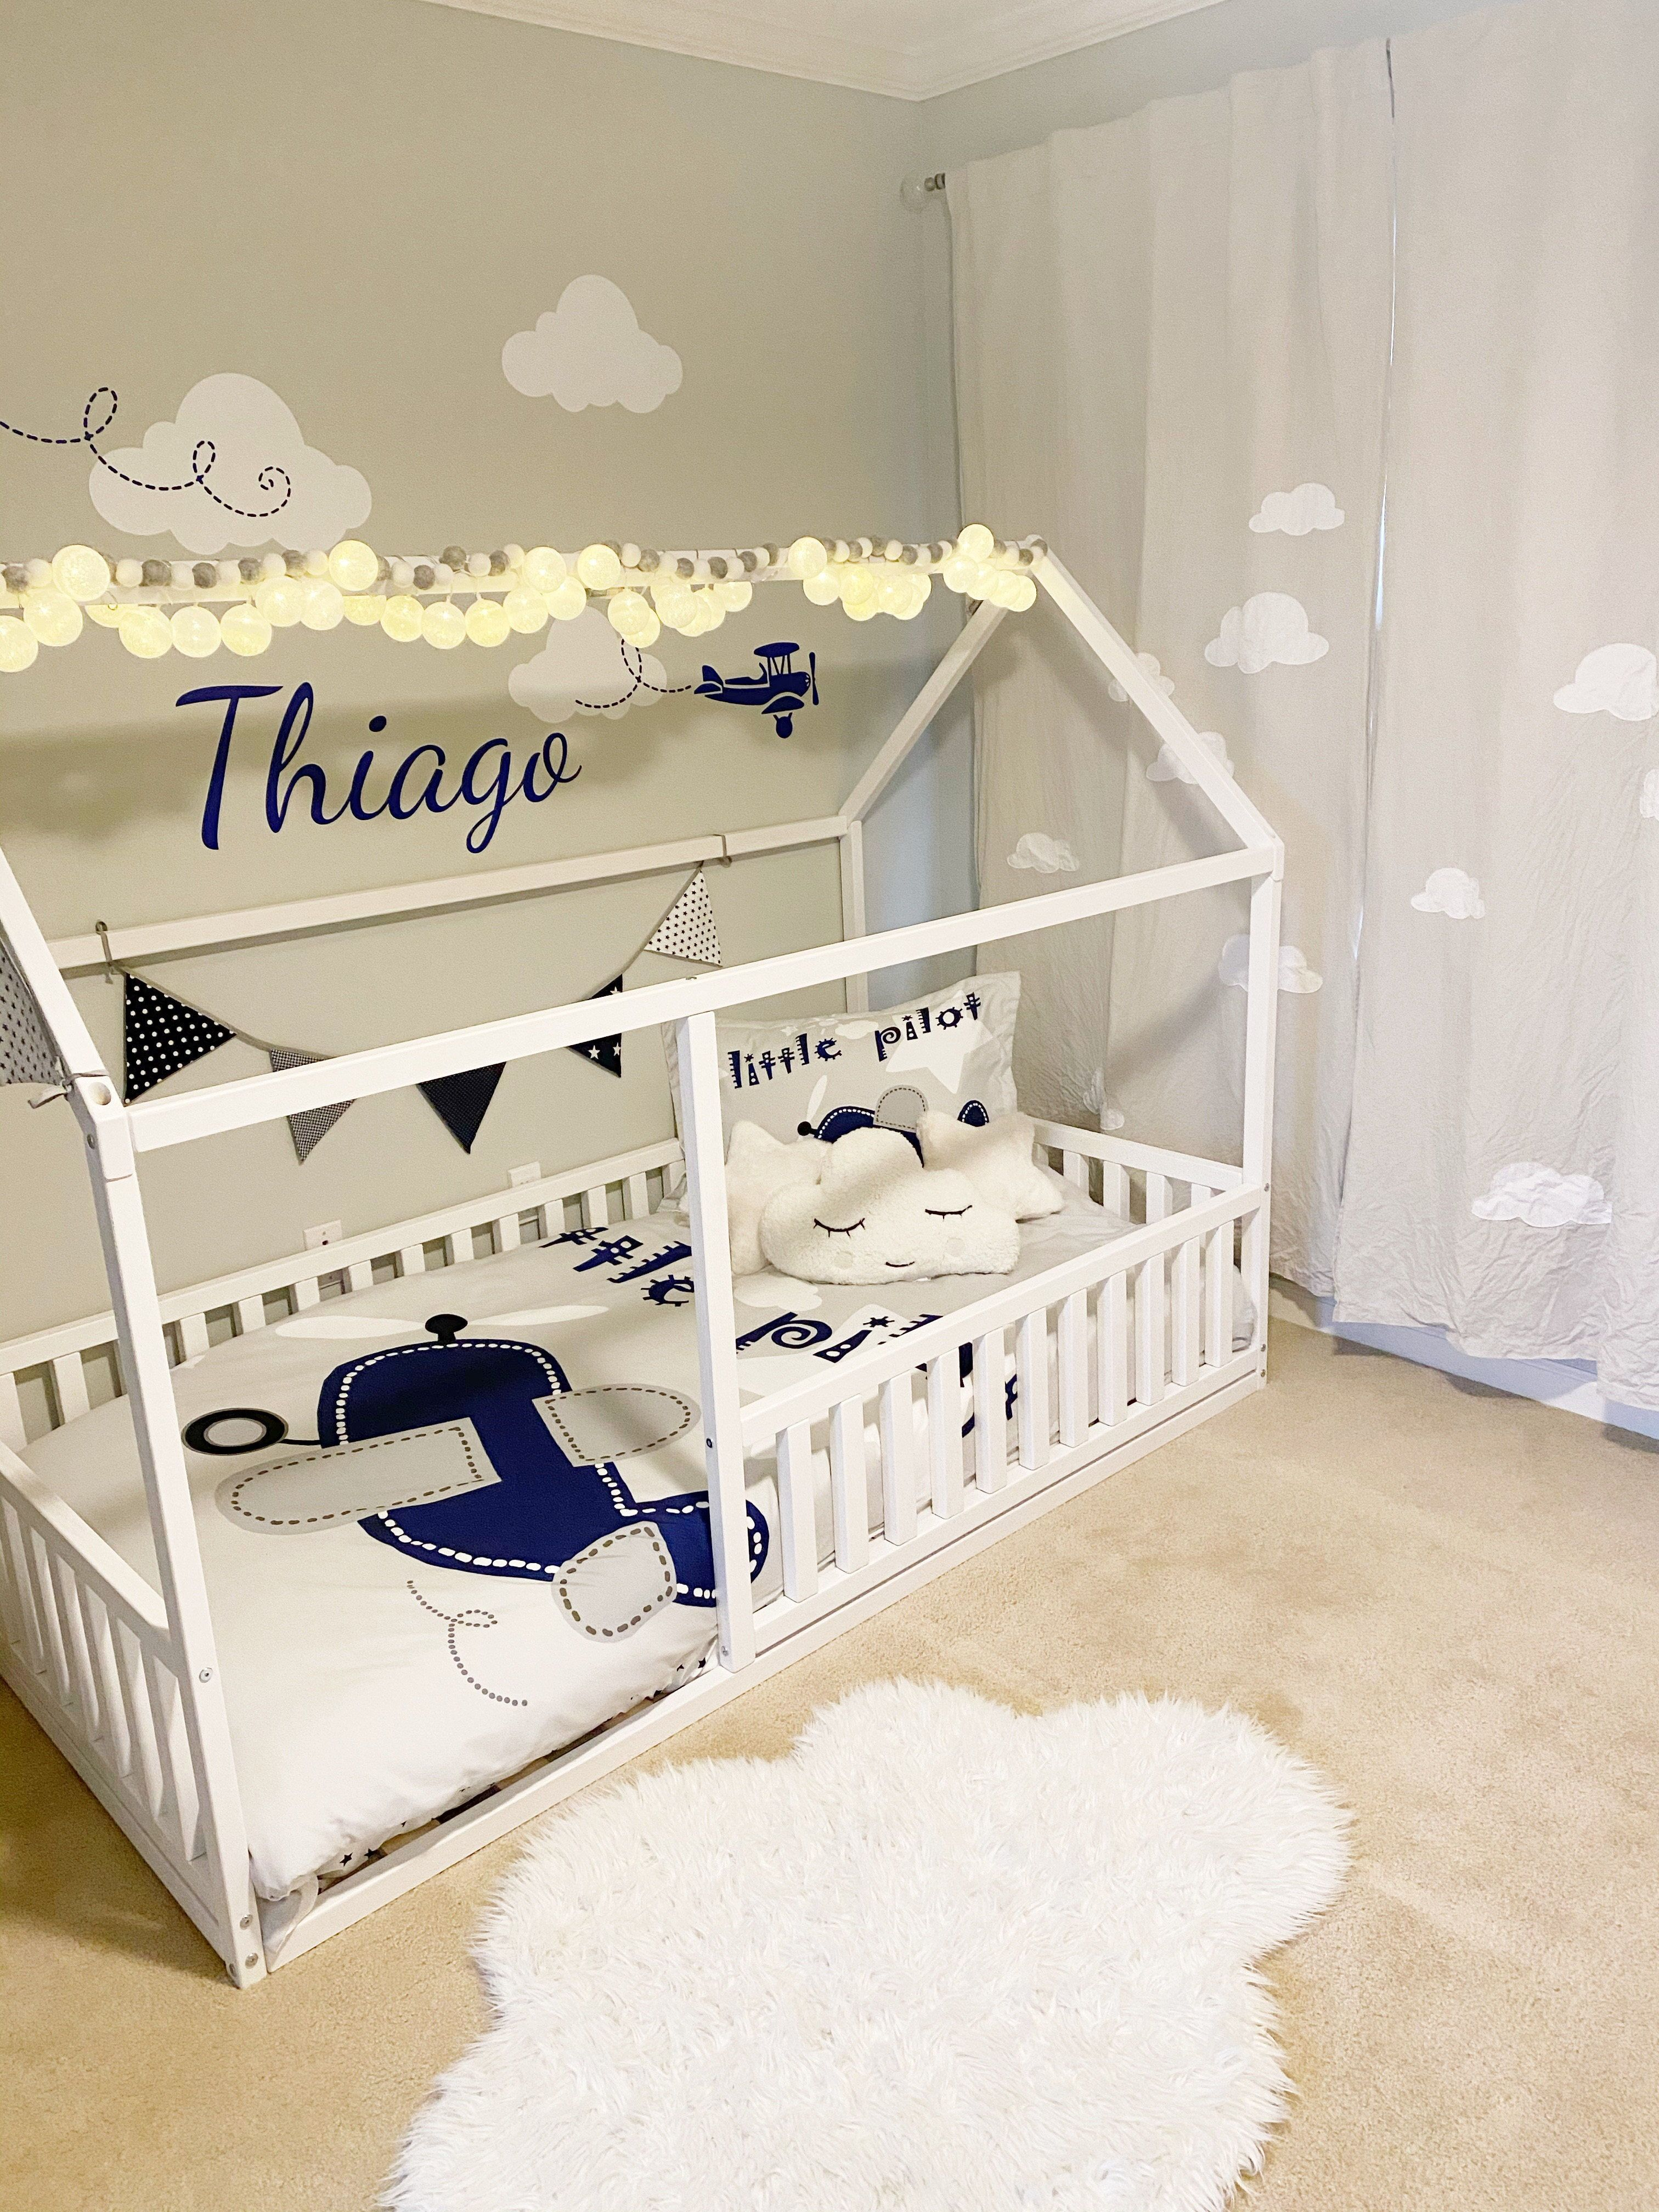 Scandinavian Design Baby Room Interior Baby Bed Or Children Etsy In 2020 Kids Bed Frames Scandinavian Kids Furniture Baby Furniture